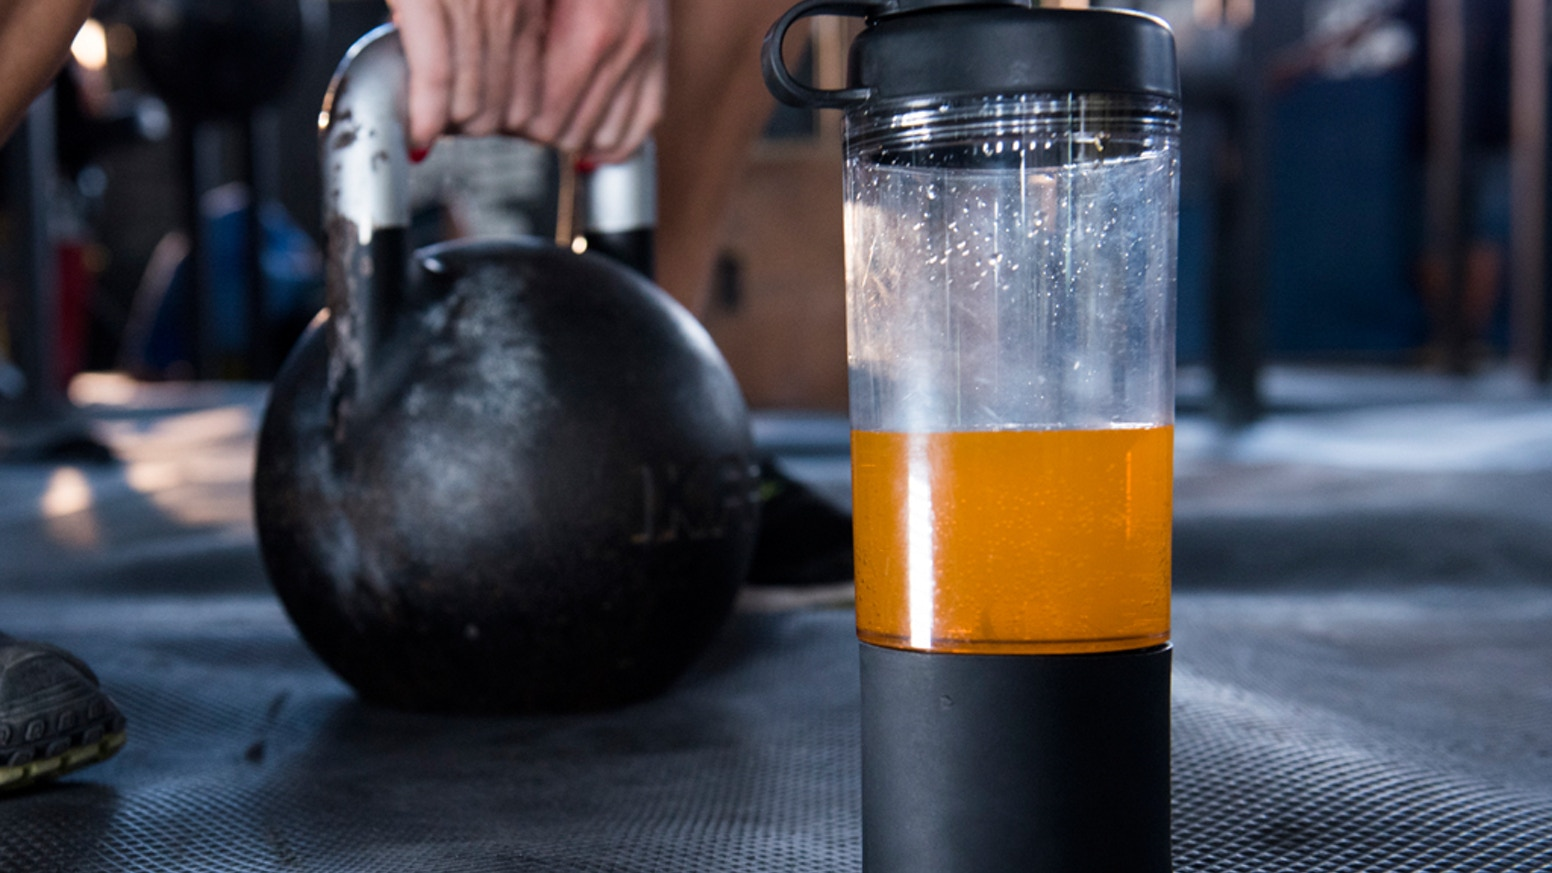 A Hybrid Shaker Bottle that allows you to store and release your supplement, whenever and wherever you want.